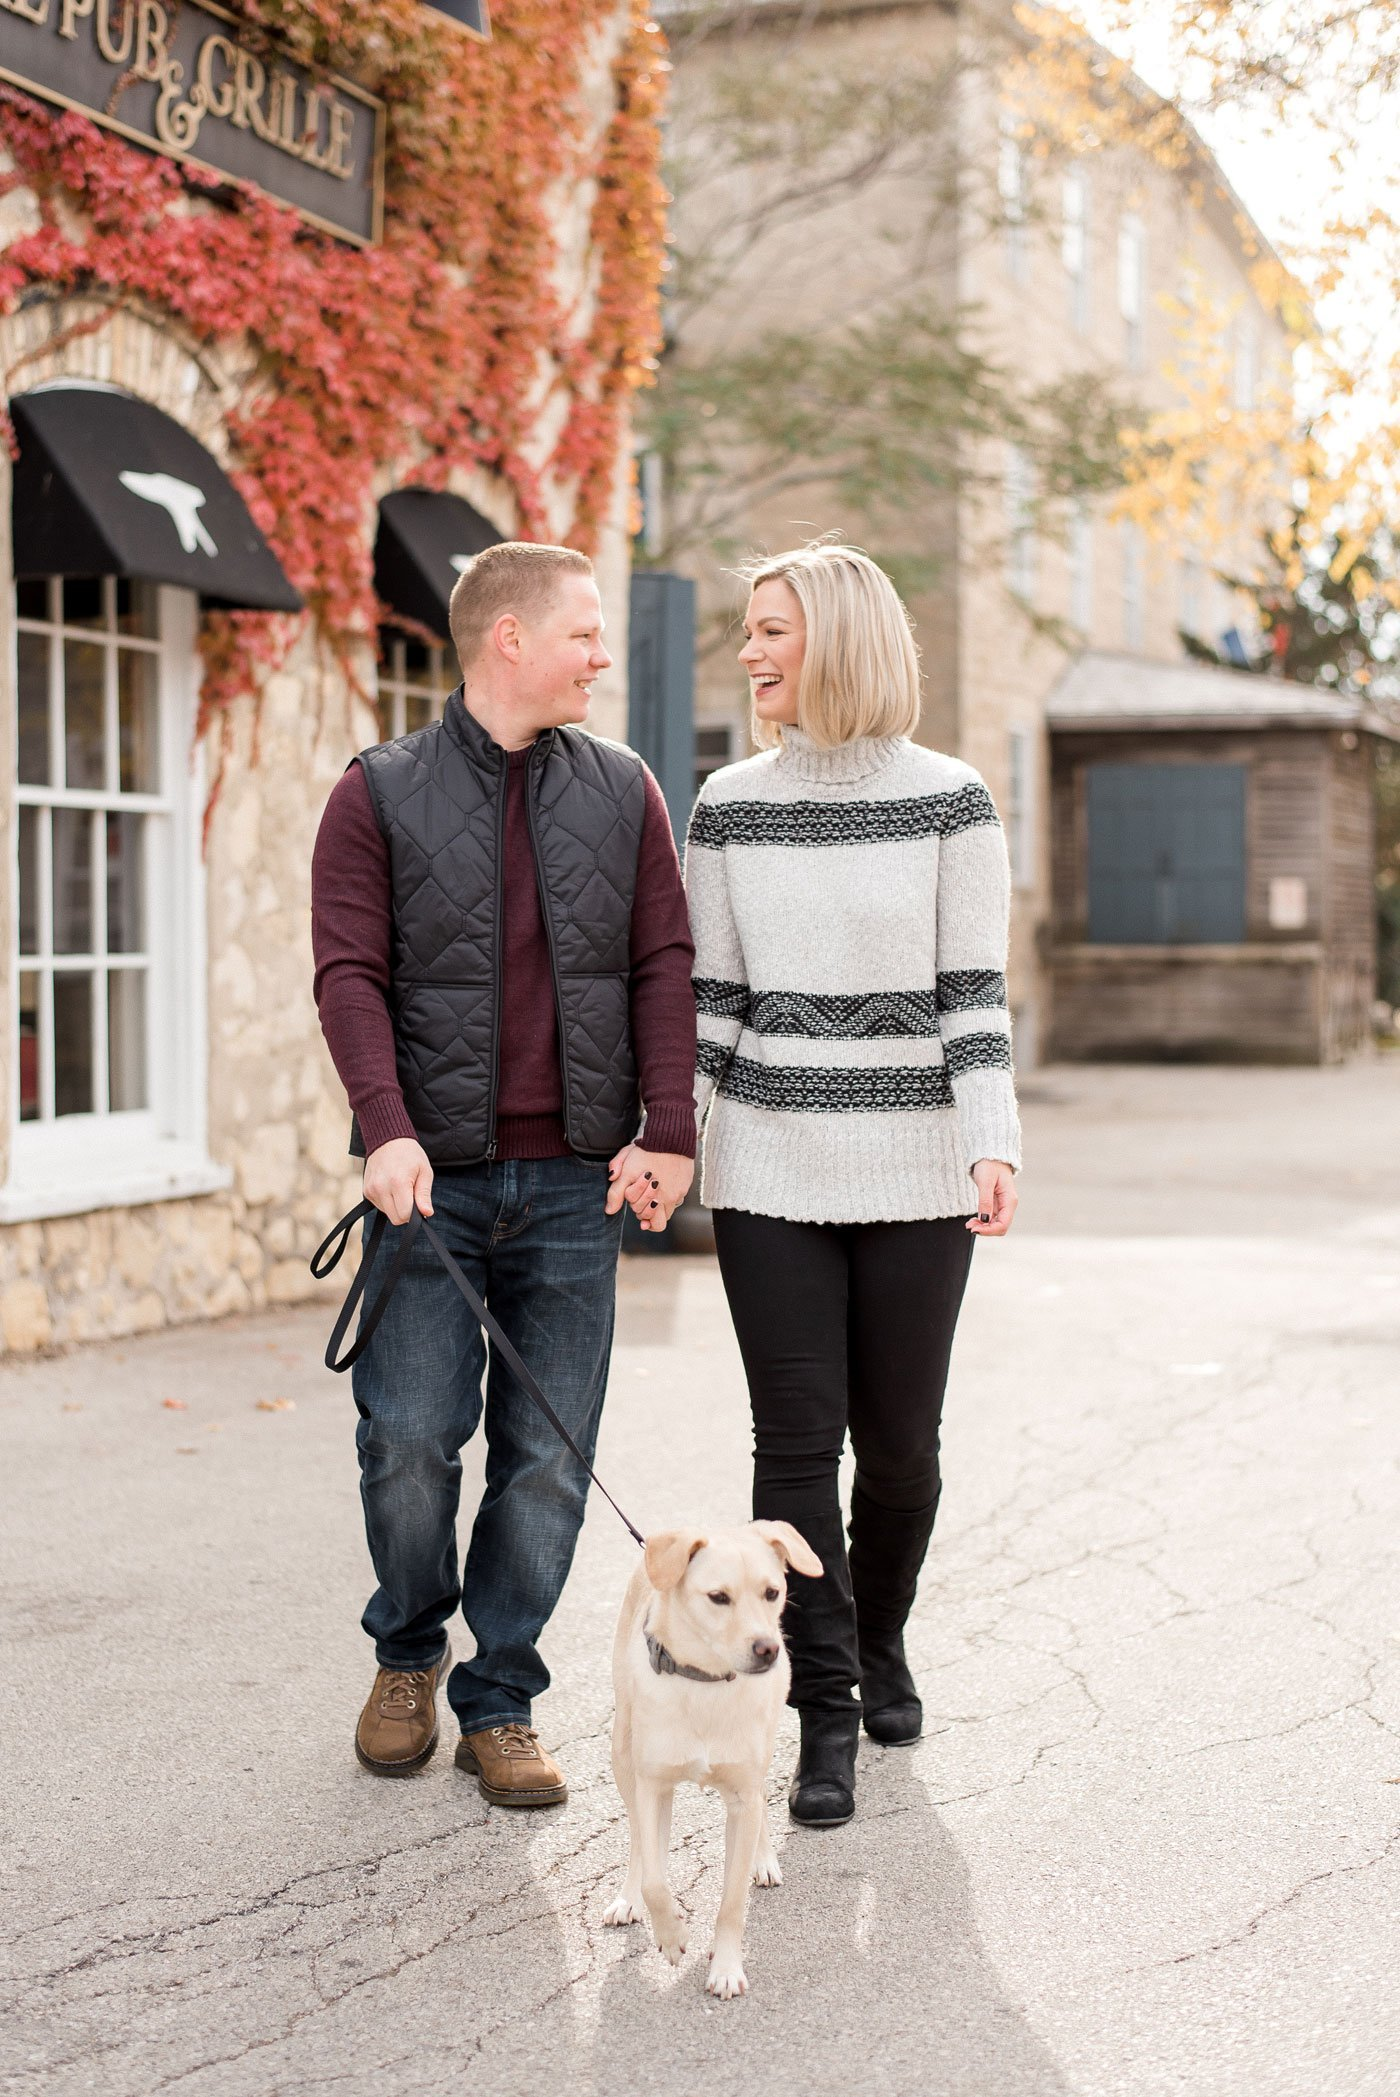 fall couples photo with dog - cedarburg, wis.